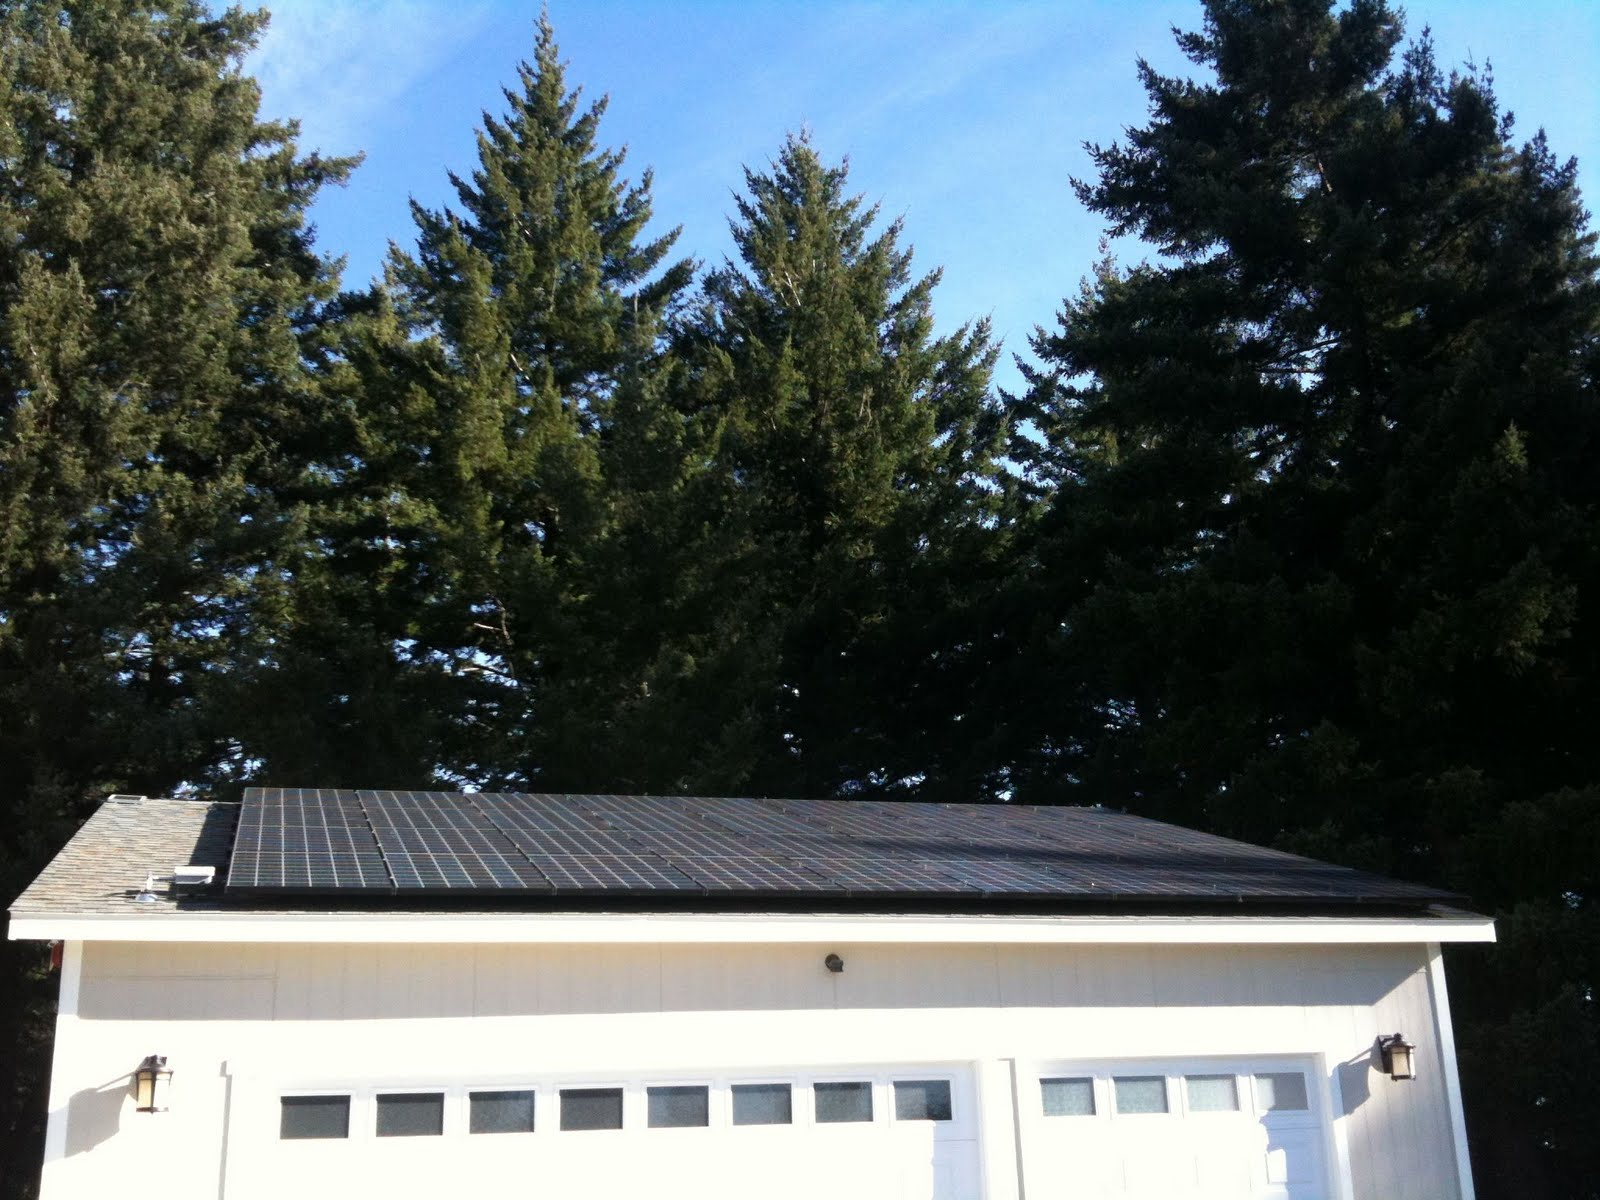 Adrian Cockcroft S Blog Solar Power More Panels On The